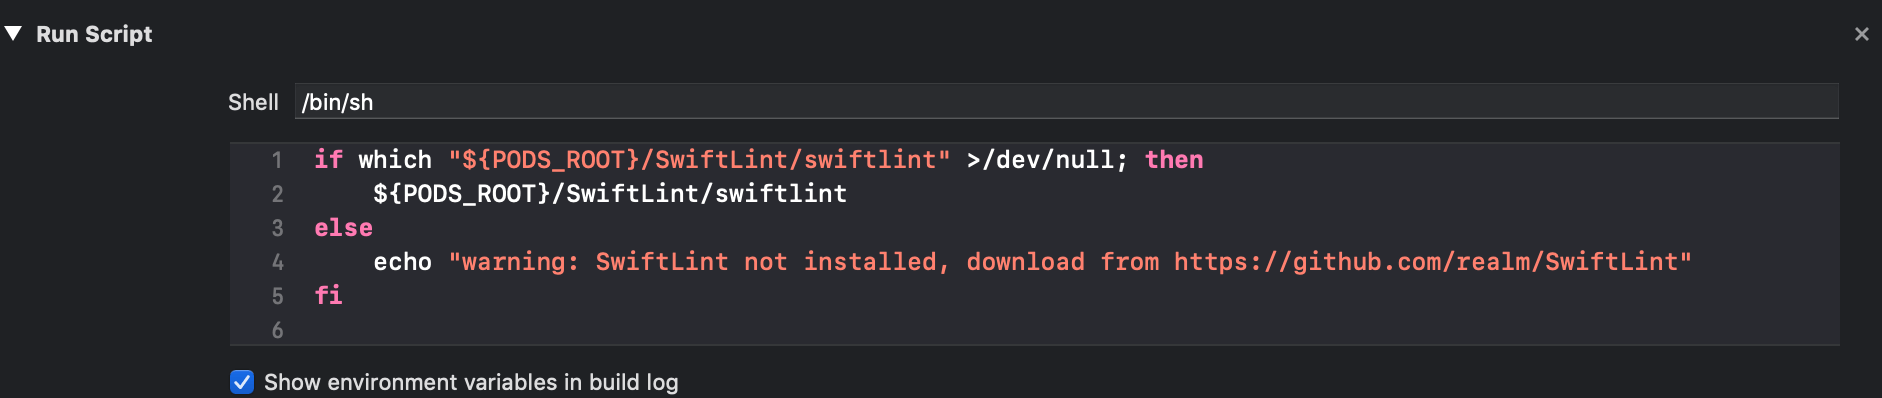 SwiftLint Run Script Phase screenshot